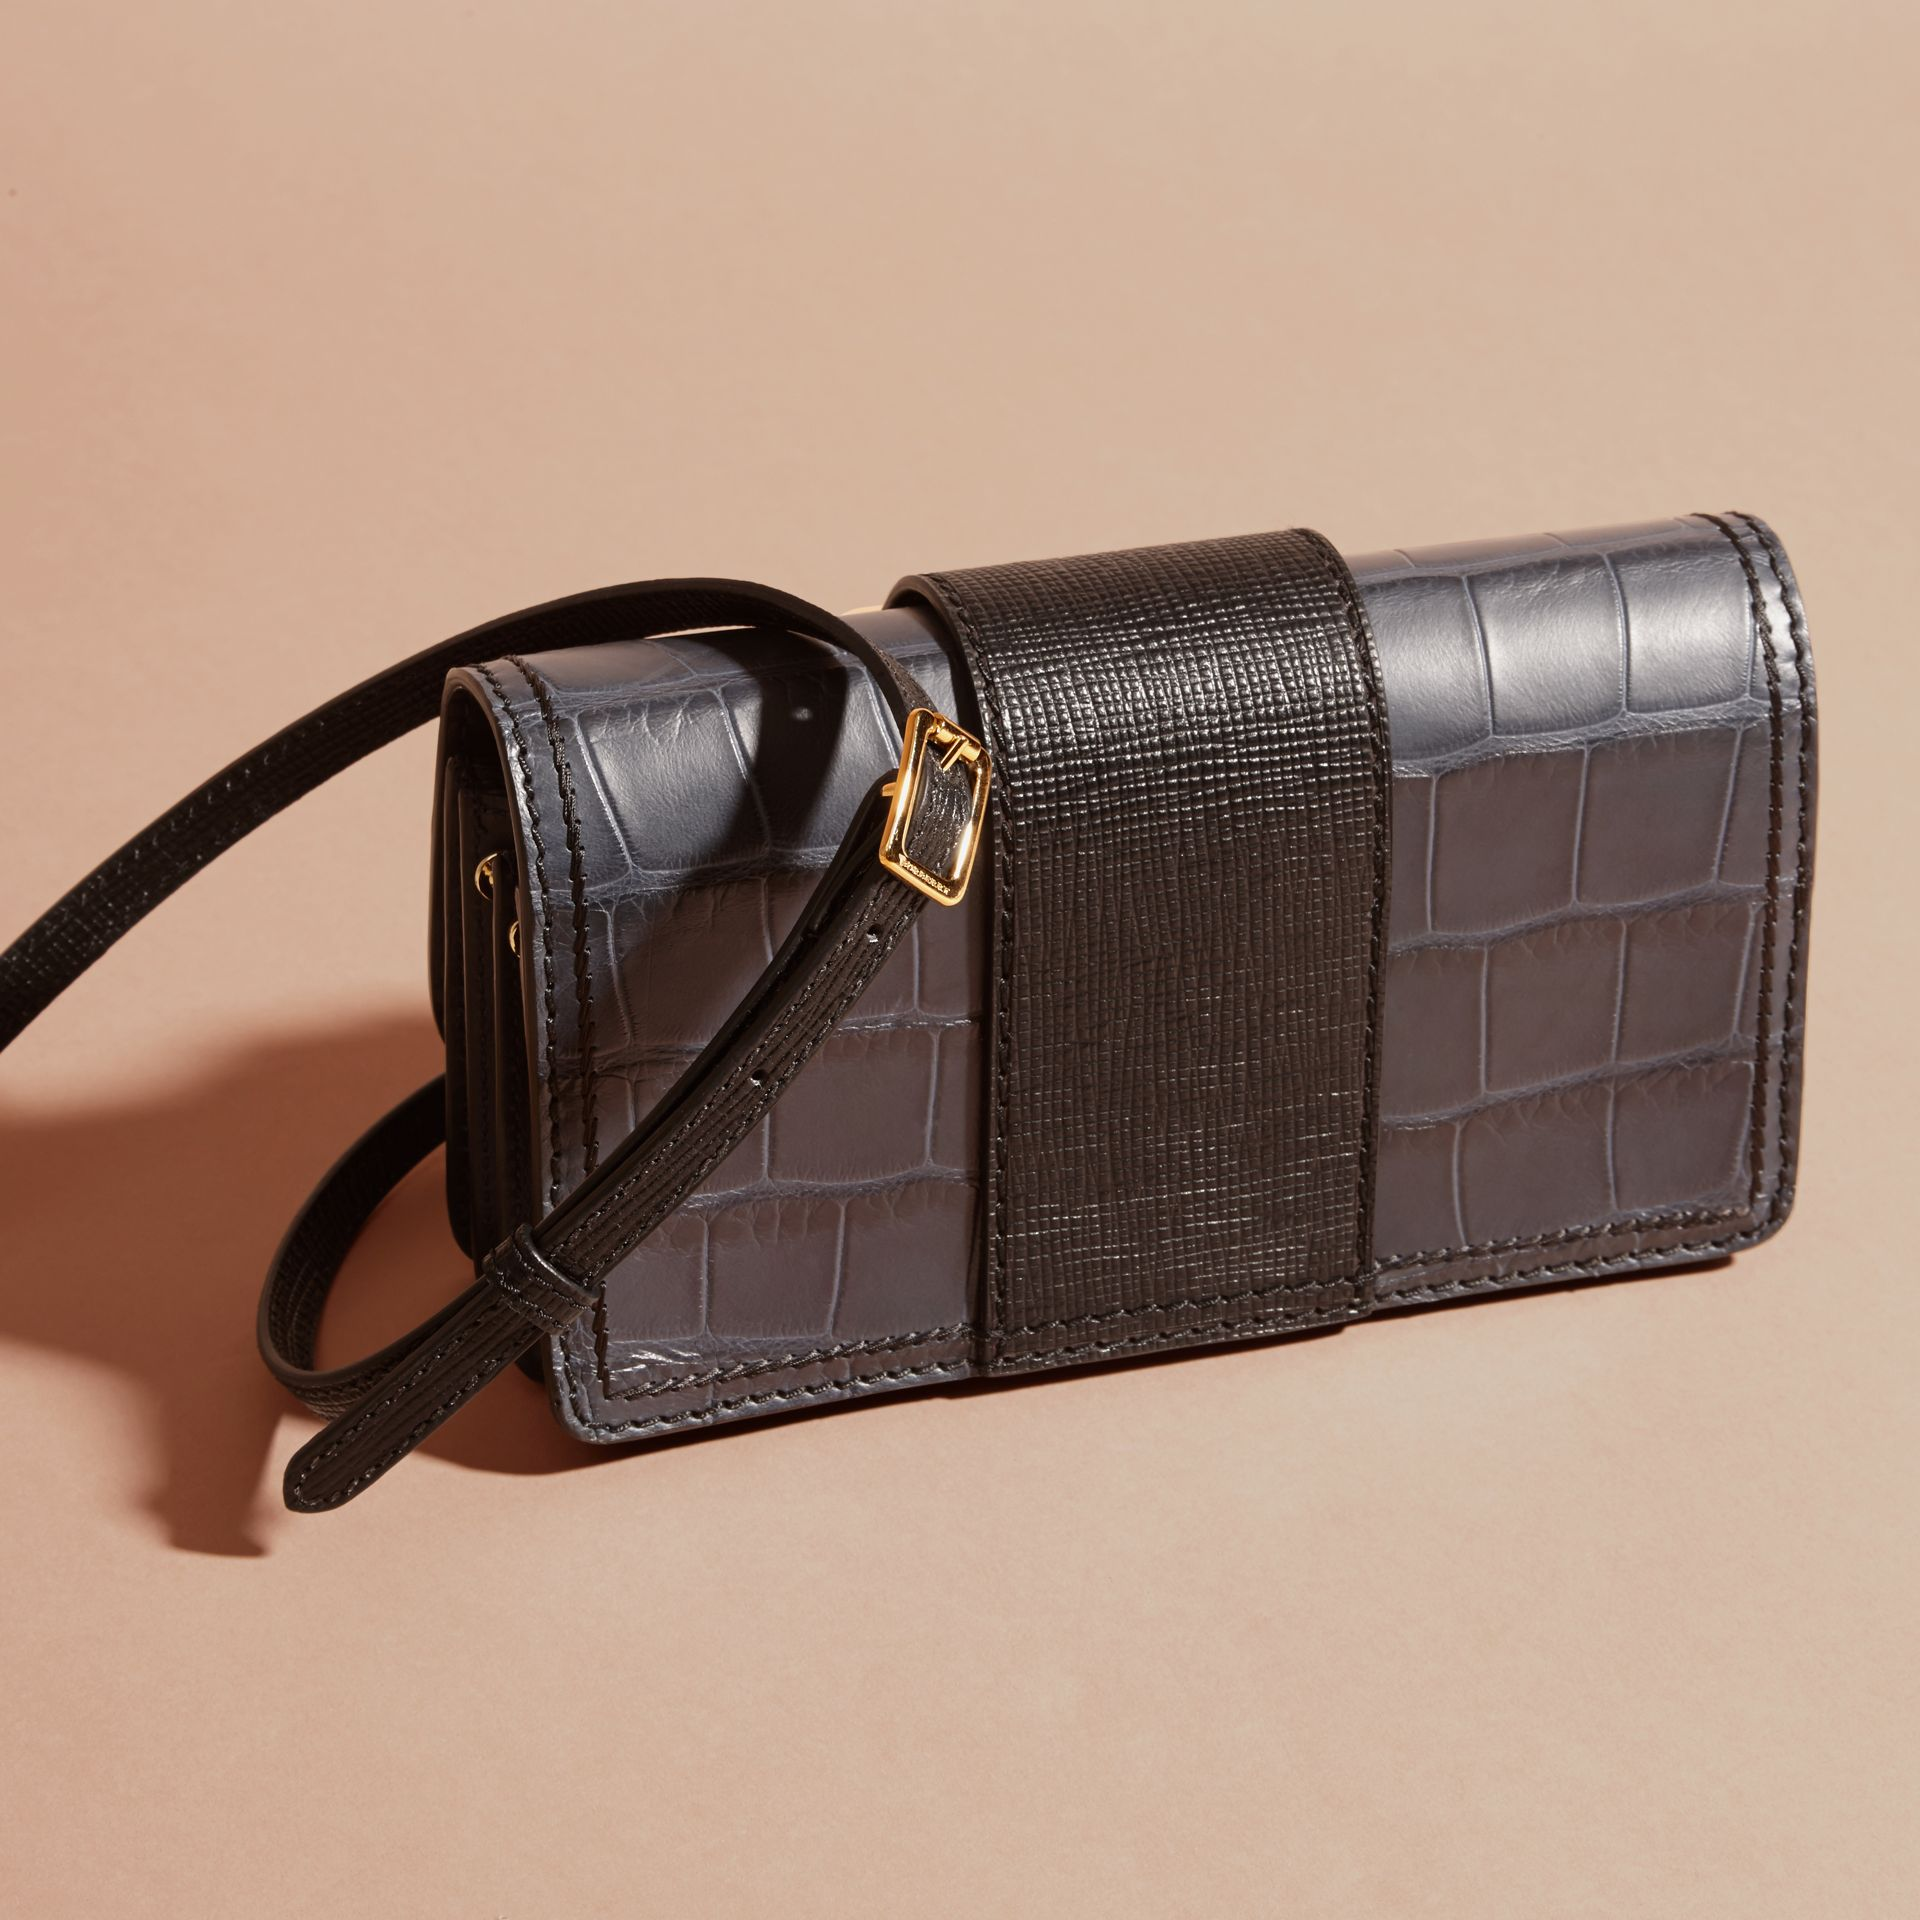 Petit sac The Buckle en alligator et cuir (Marine/noir) - Femme | Burberry - photo de la galerie 5